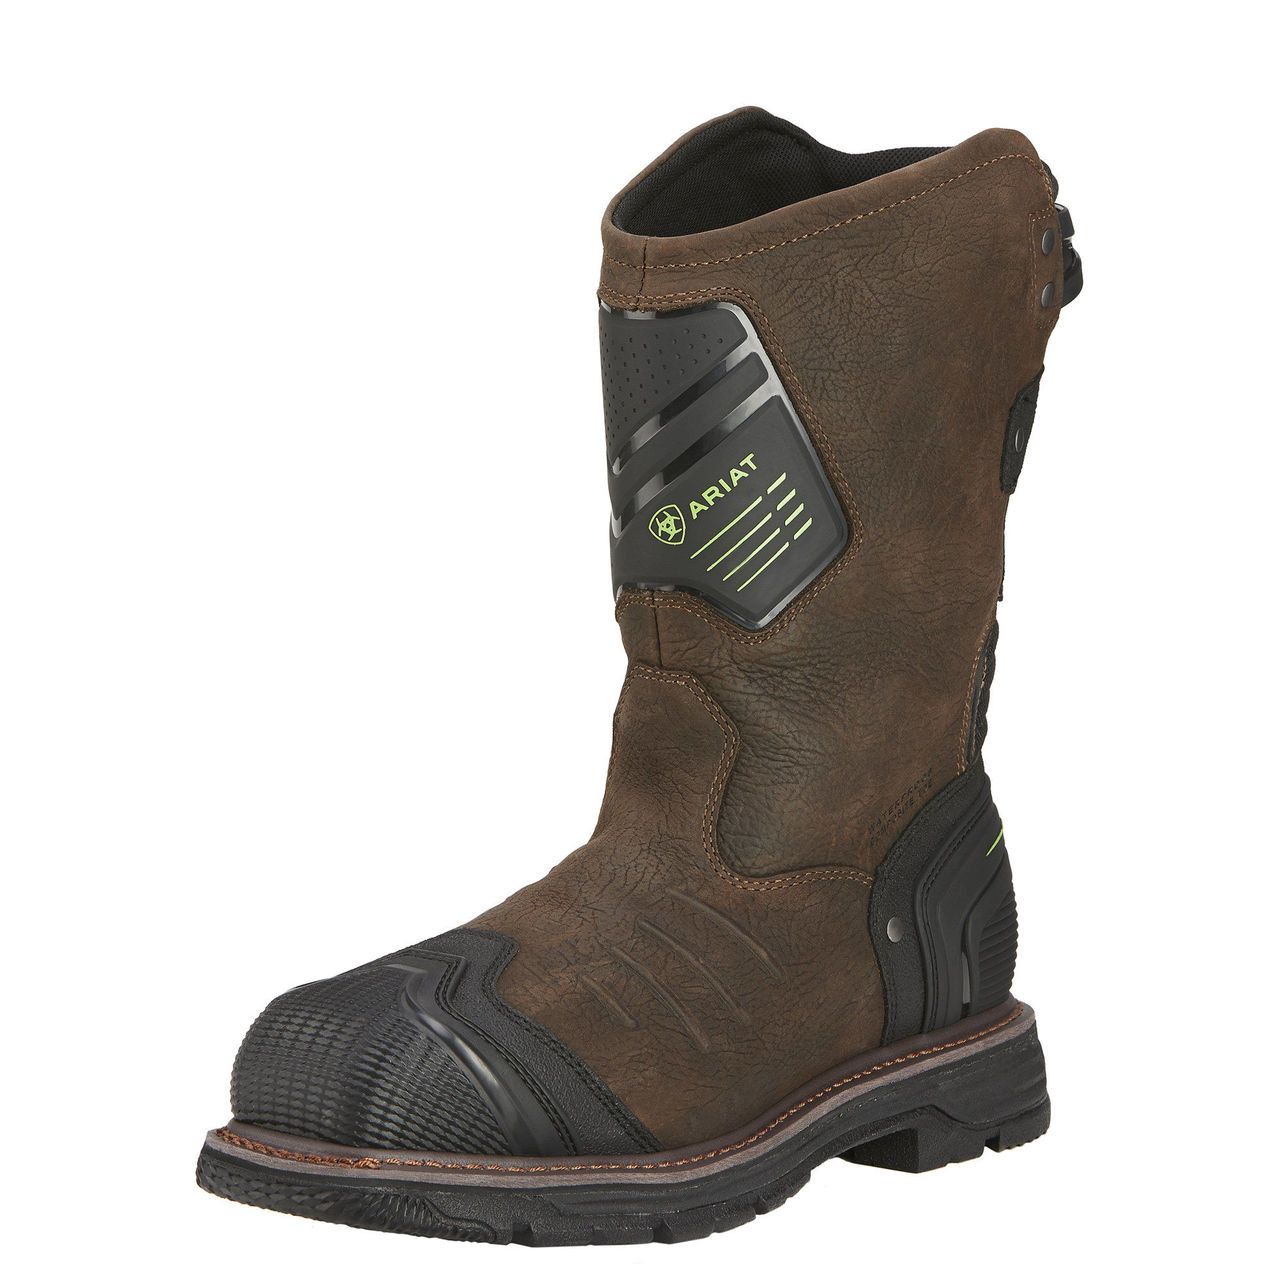 310aba4bbe4 MEN'S ARIAT WORK BOOTS CATALYST VX WORK WIDE SQUARE TOE H2O ...